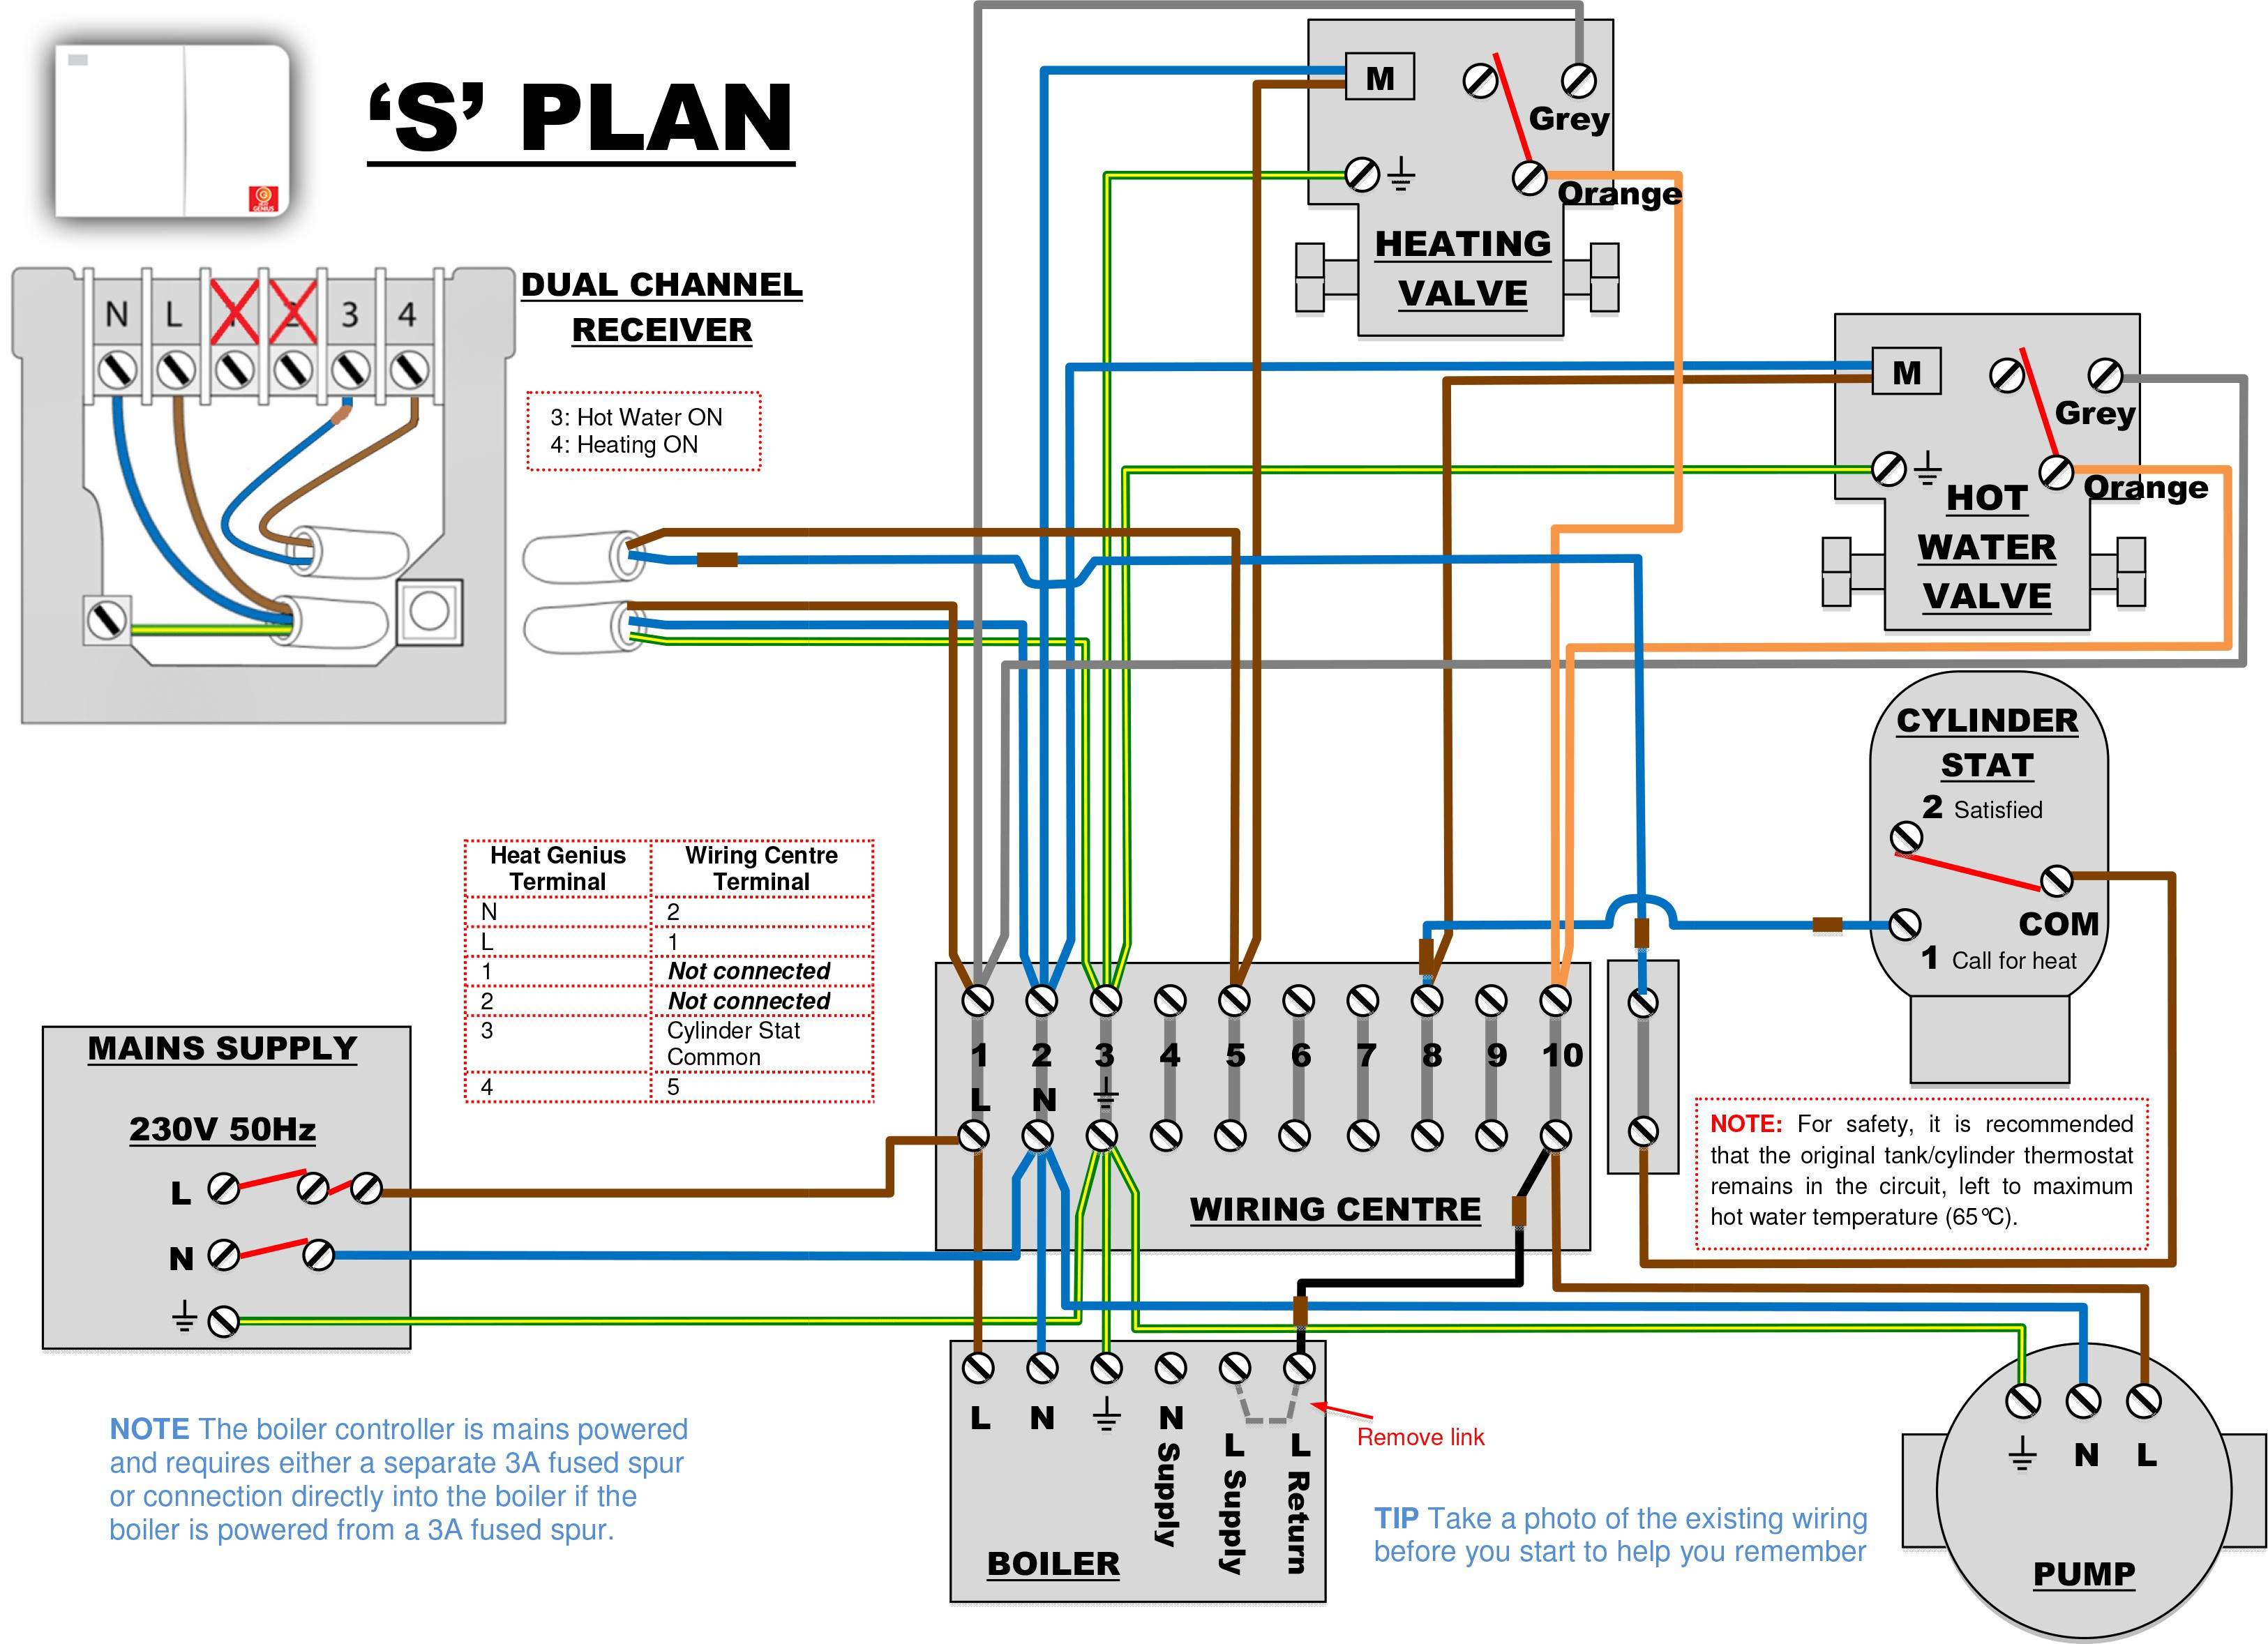 Nest T Stat Wiring Diagram | Wiring Diagram - 3Rd Generation Nest Wiring Diagram